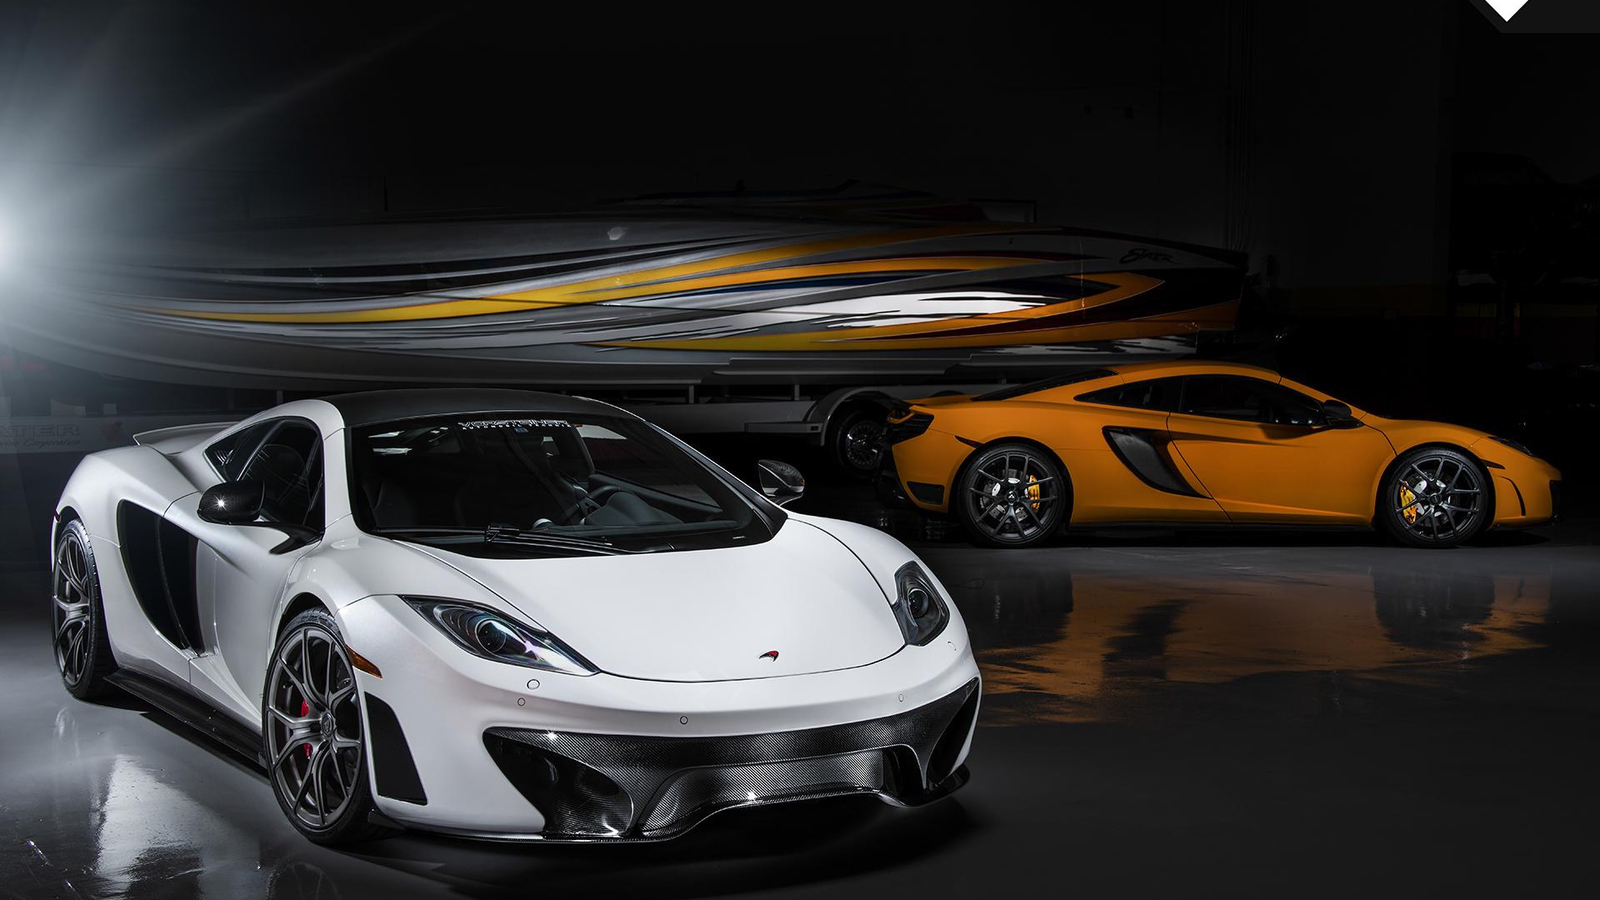 McLaren supercar wallpaper download 49774